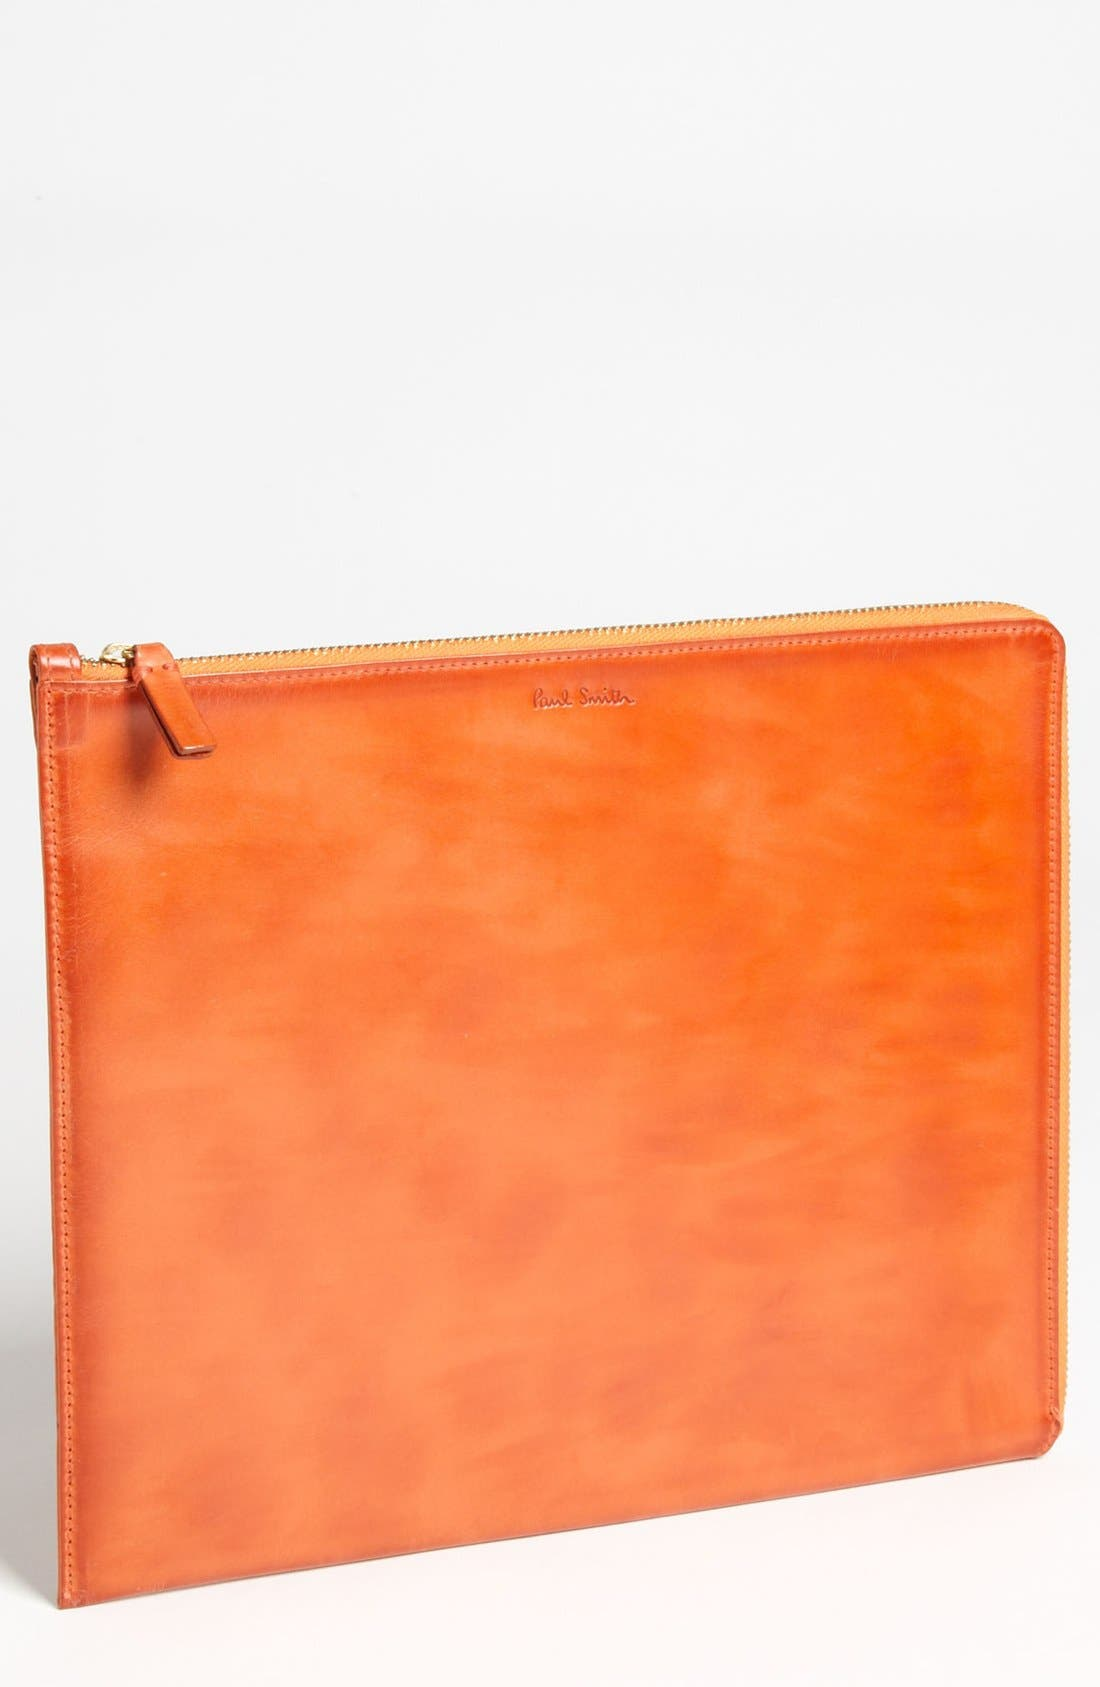 Alternate Image 1 Selected - Paul Smith Accessories Burnished Leather Tablet Case